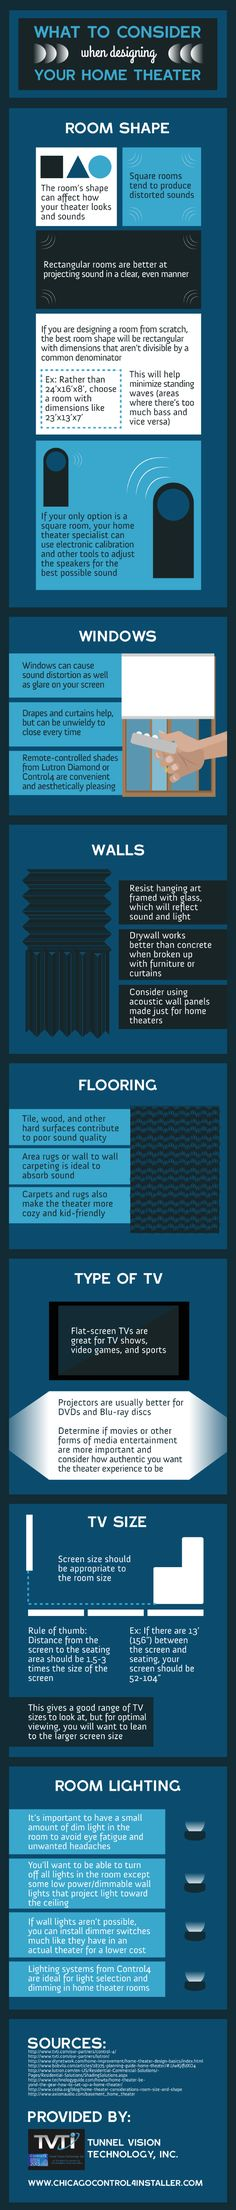 What to Consider When Designing Your Home Theater  infographic    Infographic  Basements and RoomWhat to Consider When Designing Your Home Theater  infographic  . Designing A Home Theater. Home Design Ideas